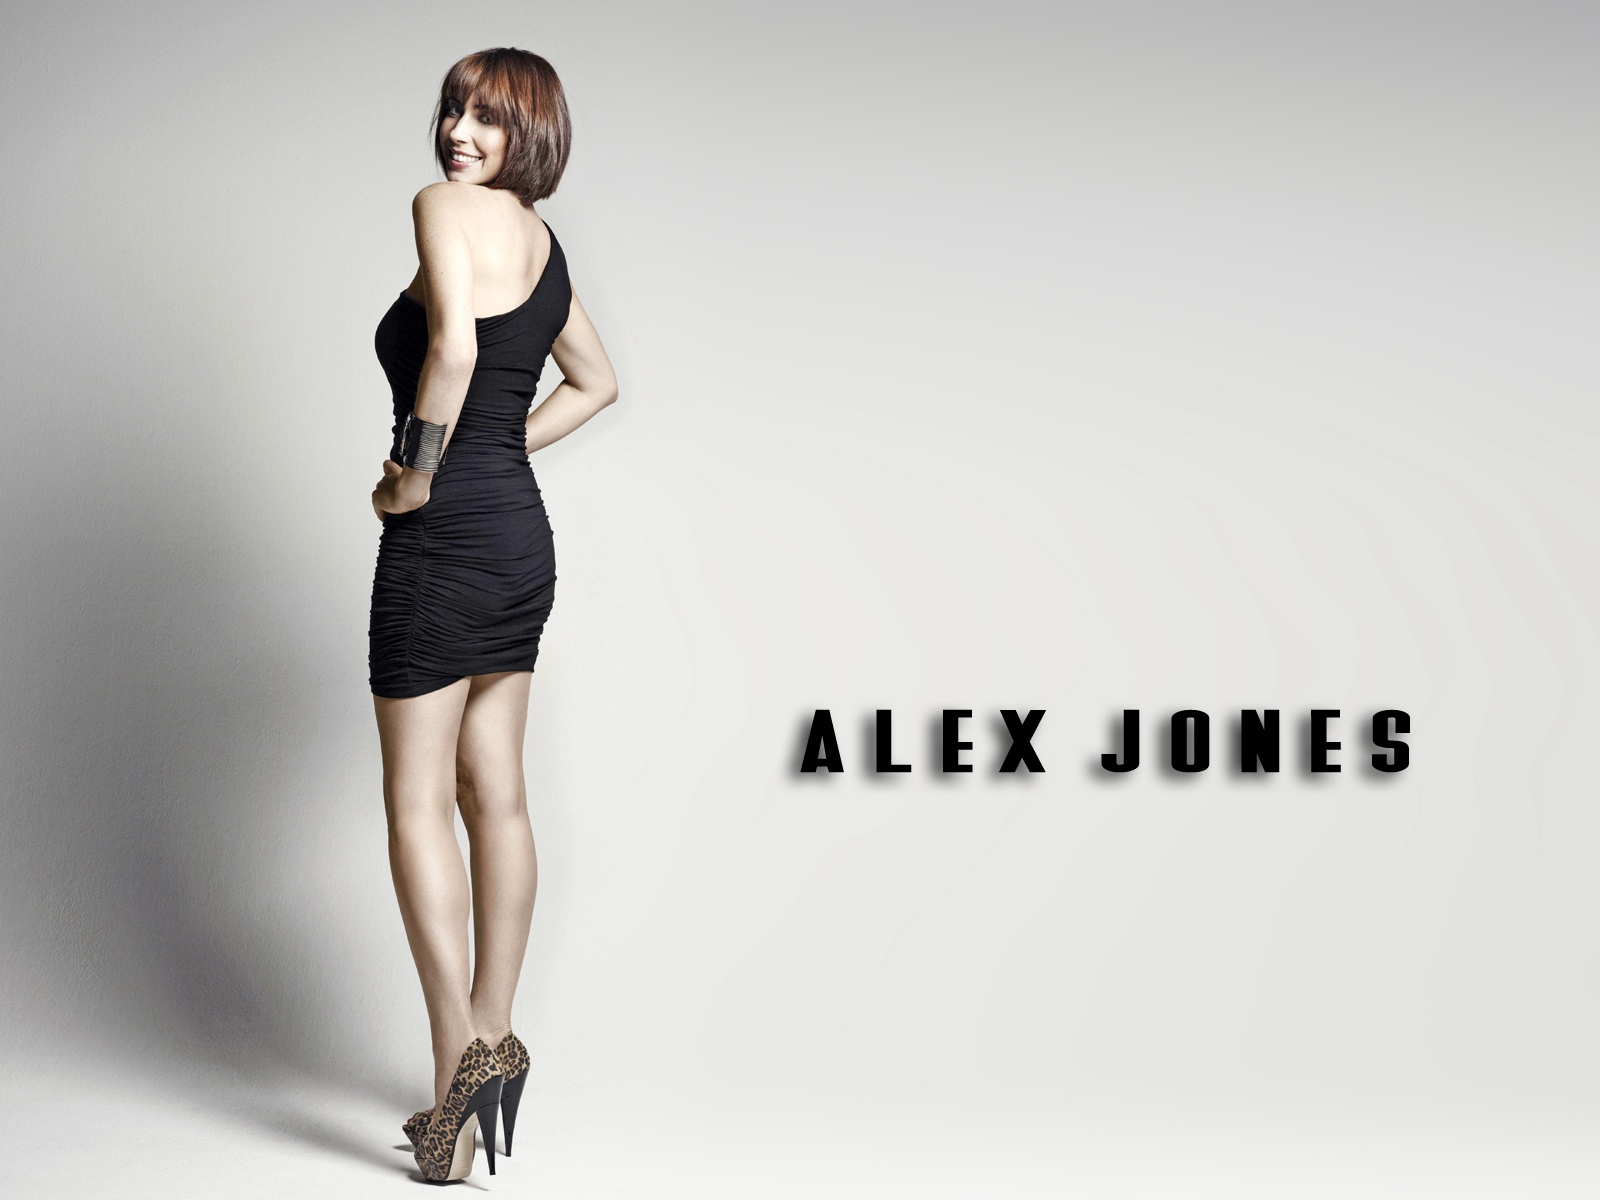 http://2.bp.blogspot.com/-WpSWXB9ayvk/T0zBDzJoG6I/AAAAAAAAKJs/5WSmDNUp5EY/s1600/sploogeblog_alex_jones_littleblackdress_wallpaper.jpg